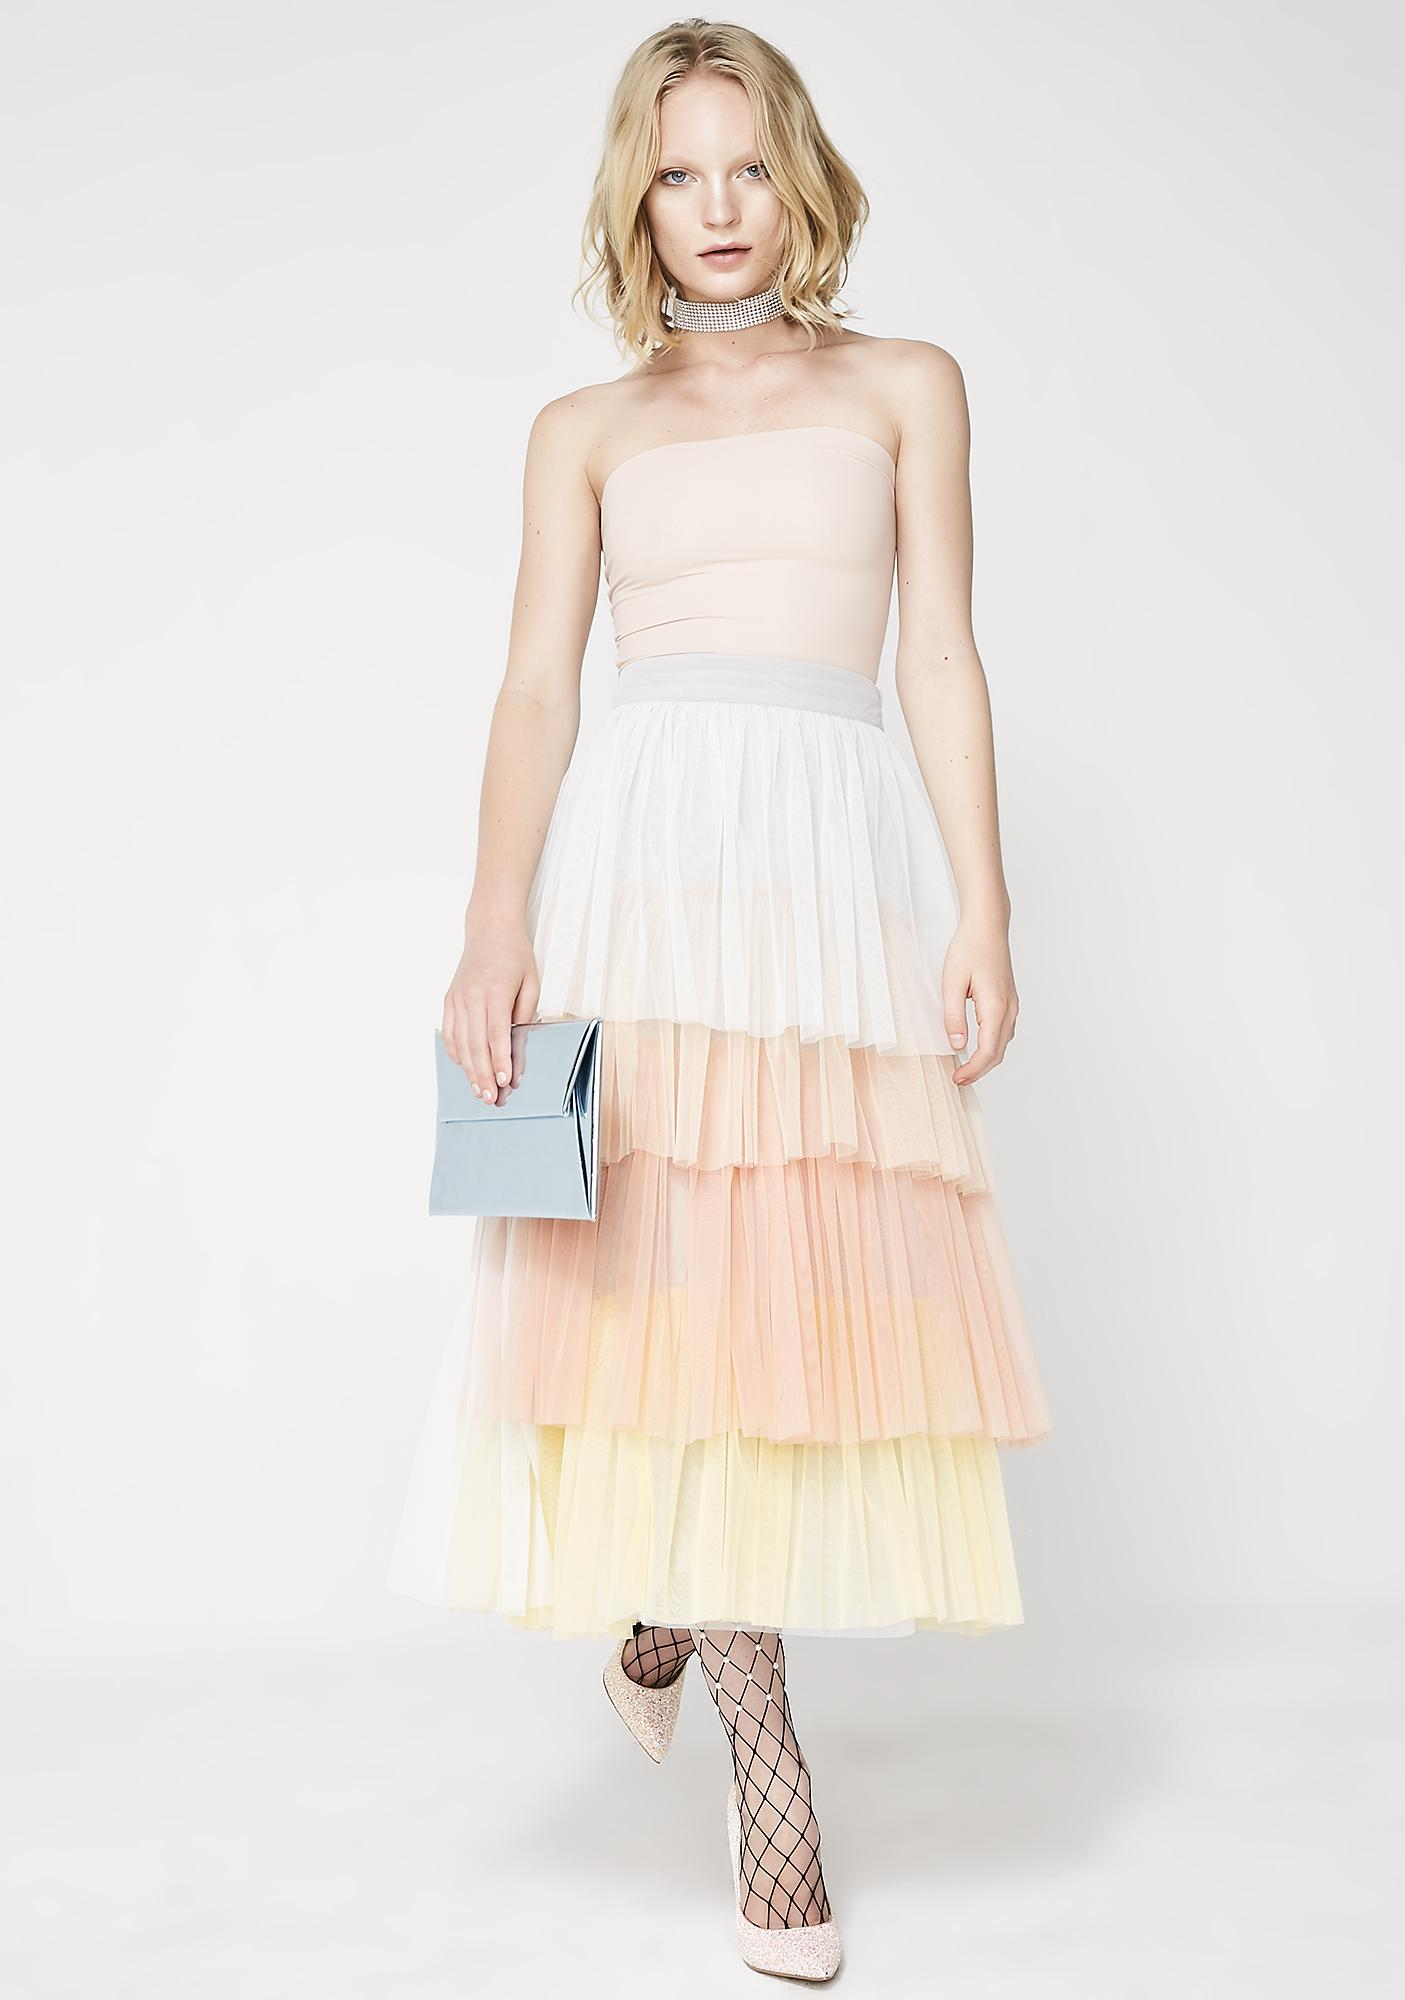 Glamorous New Princess Layered Skirt